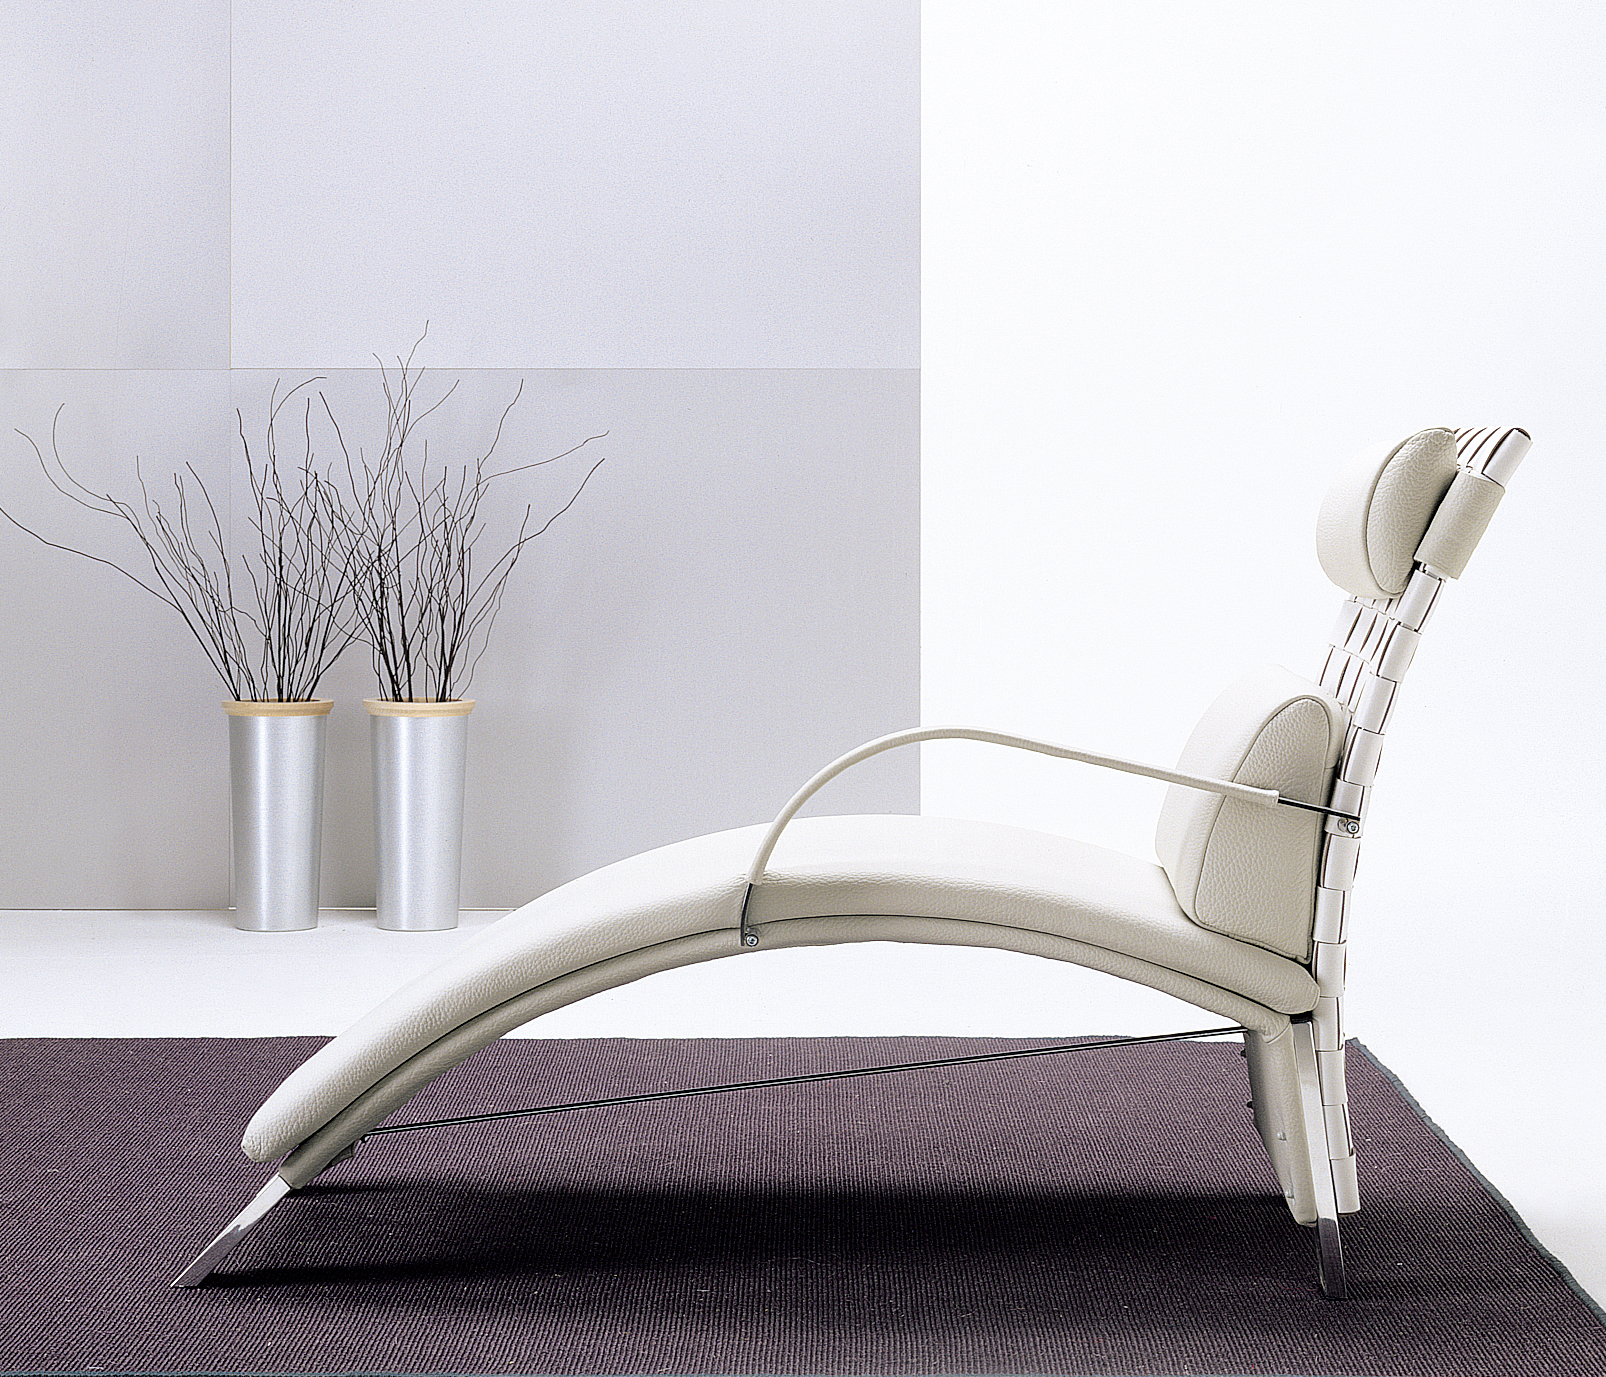 Poltrone Chaise Longue Design.Zani Collezione Poltrone Arca Fauteuil Relax Inclinable Chaise Longue